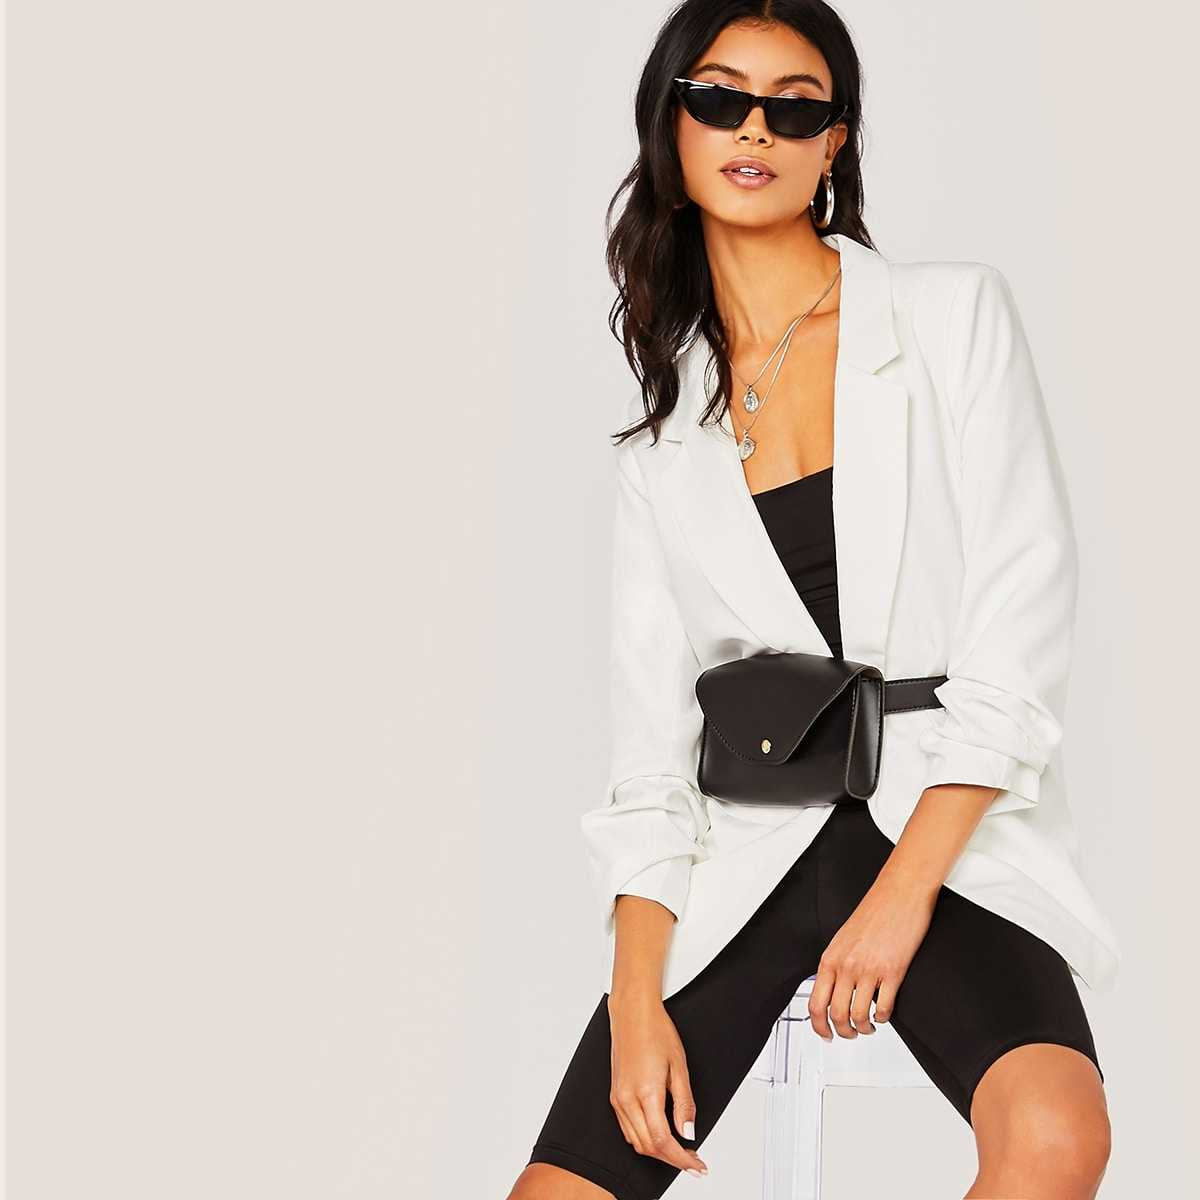 Notch Collar Gathered Sleeve Blazer Without Bag in White by ROMWE on GOOFASH